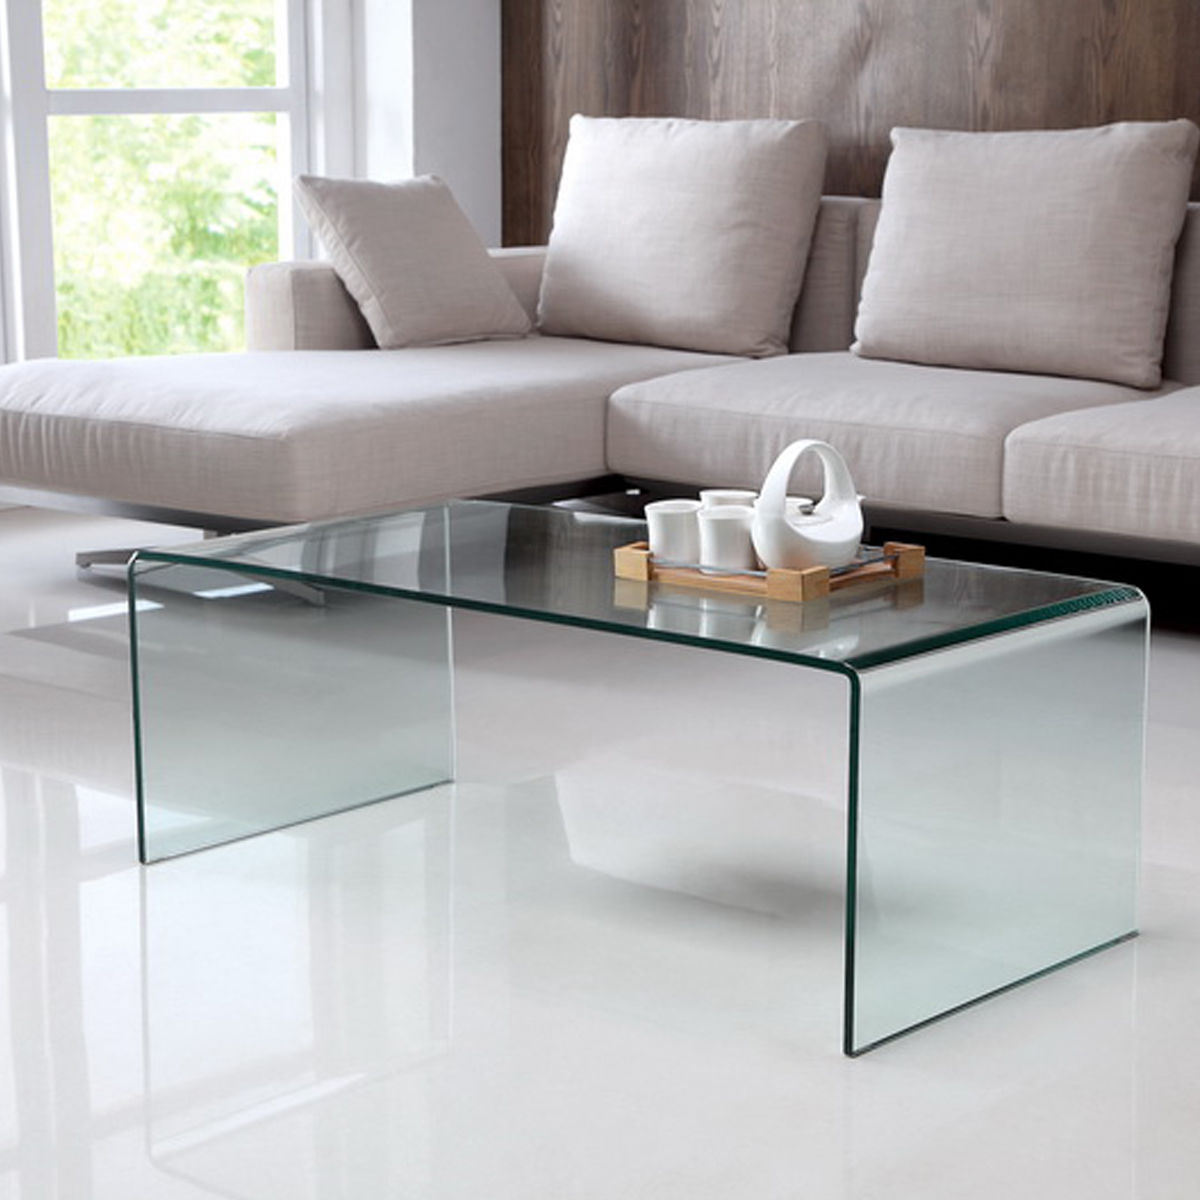 Costway Modern Tempered Glass Coffee Cocktail Table Accent Living Room Furniture by Costway